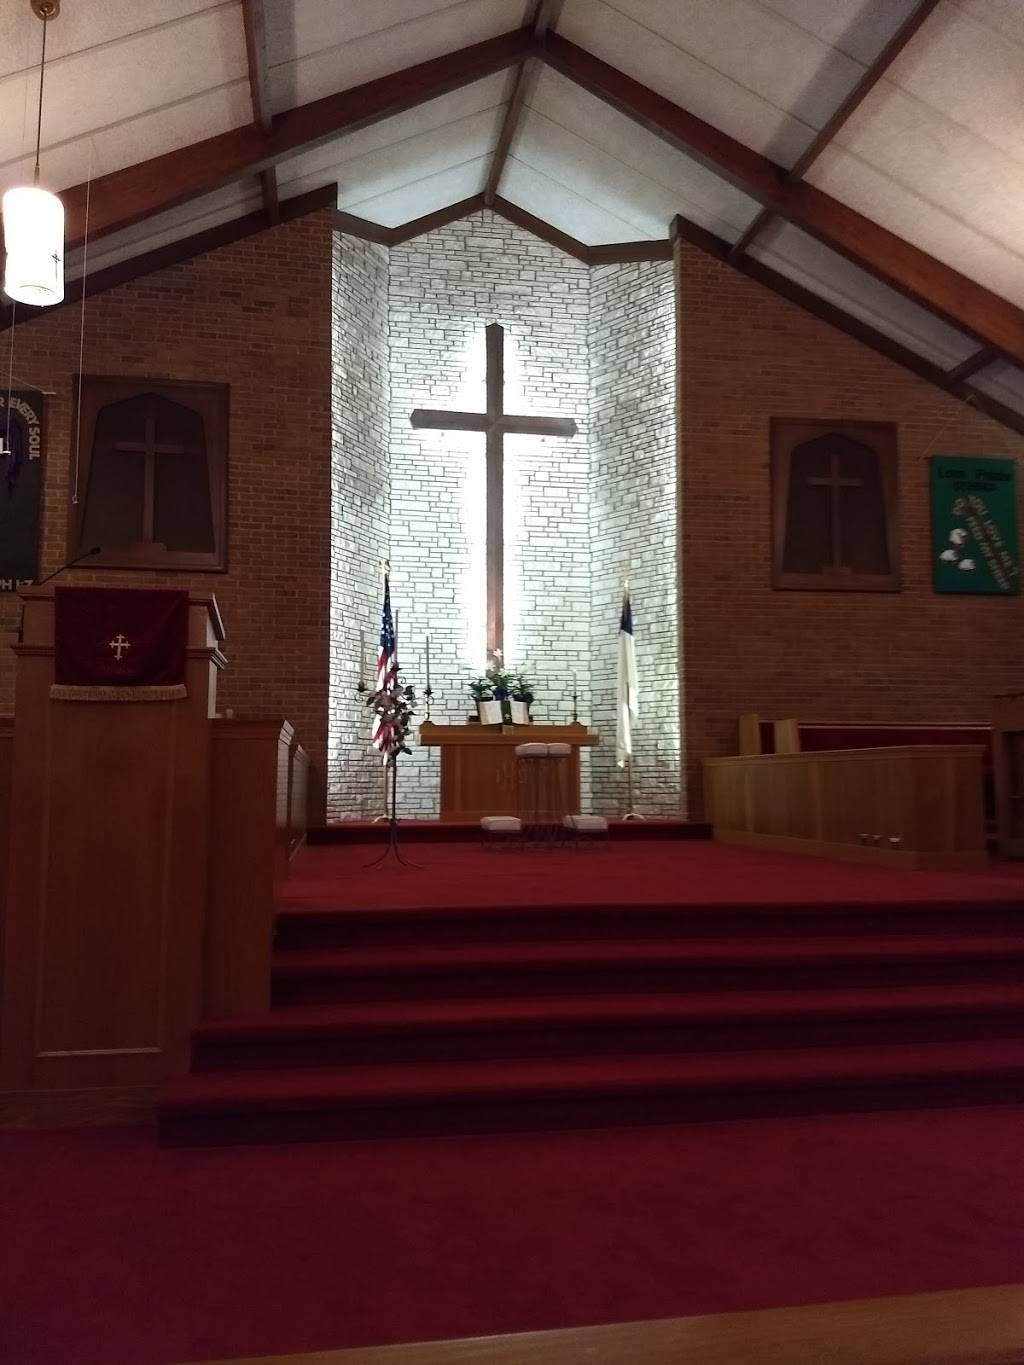 Hines Chapel - church  | Photo 1 of 1 | Address: McLeansville, NC 27301, USA | Phone: (336) 621-1385